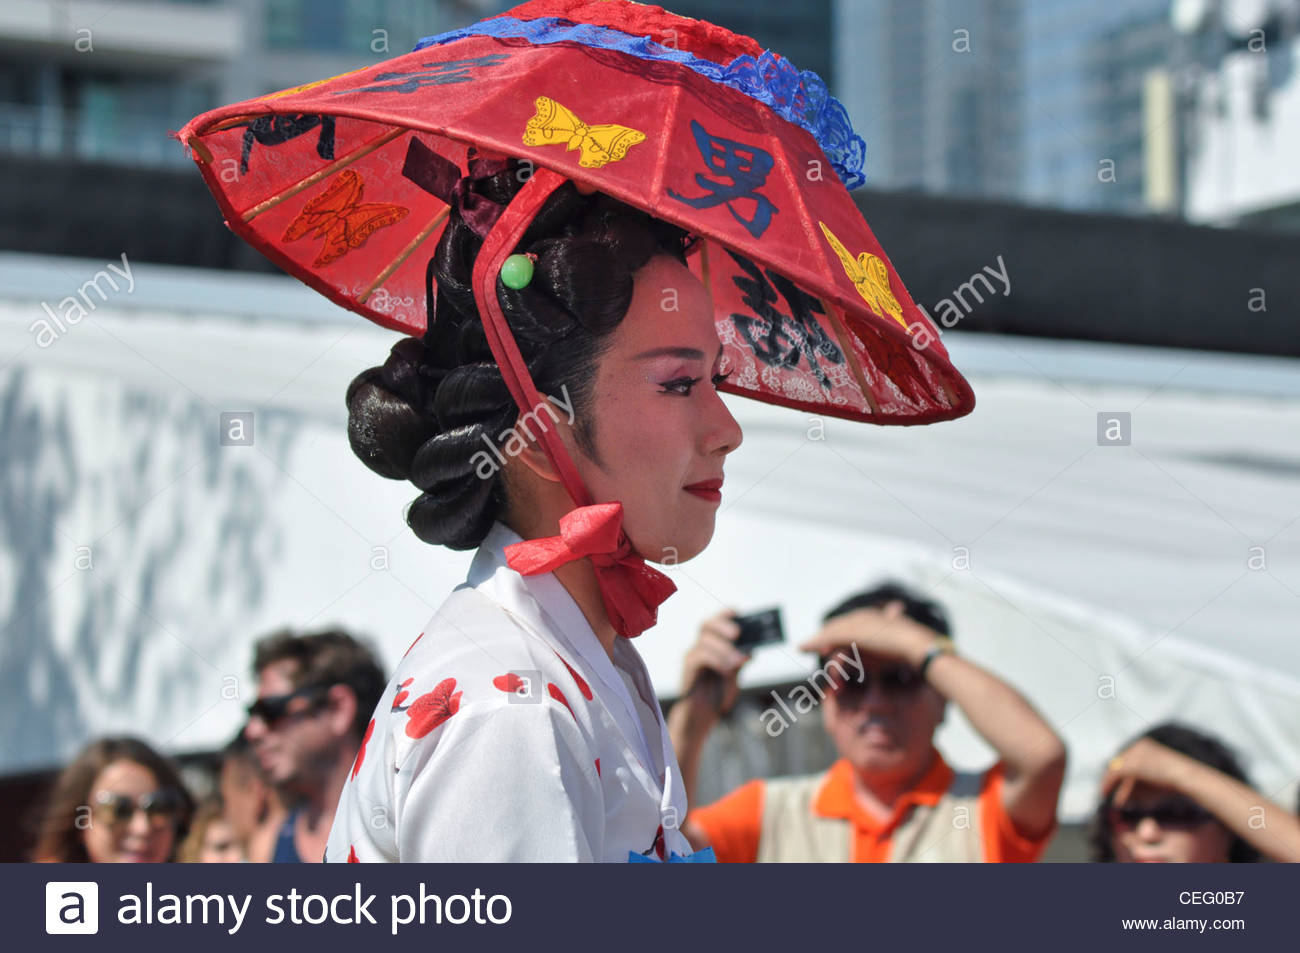 People looking a pretty Asian girl walking in a multicultural city like Toronto. Korean Dancer.Toronto: multicultural - Stock Image